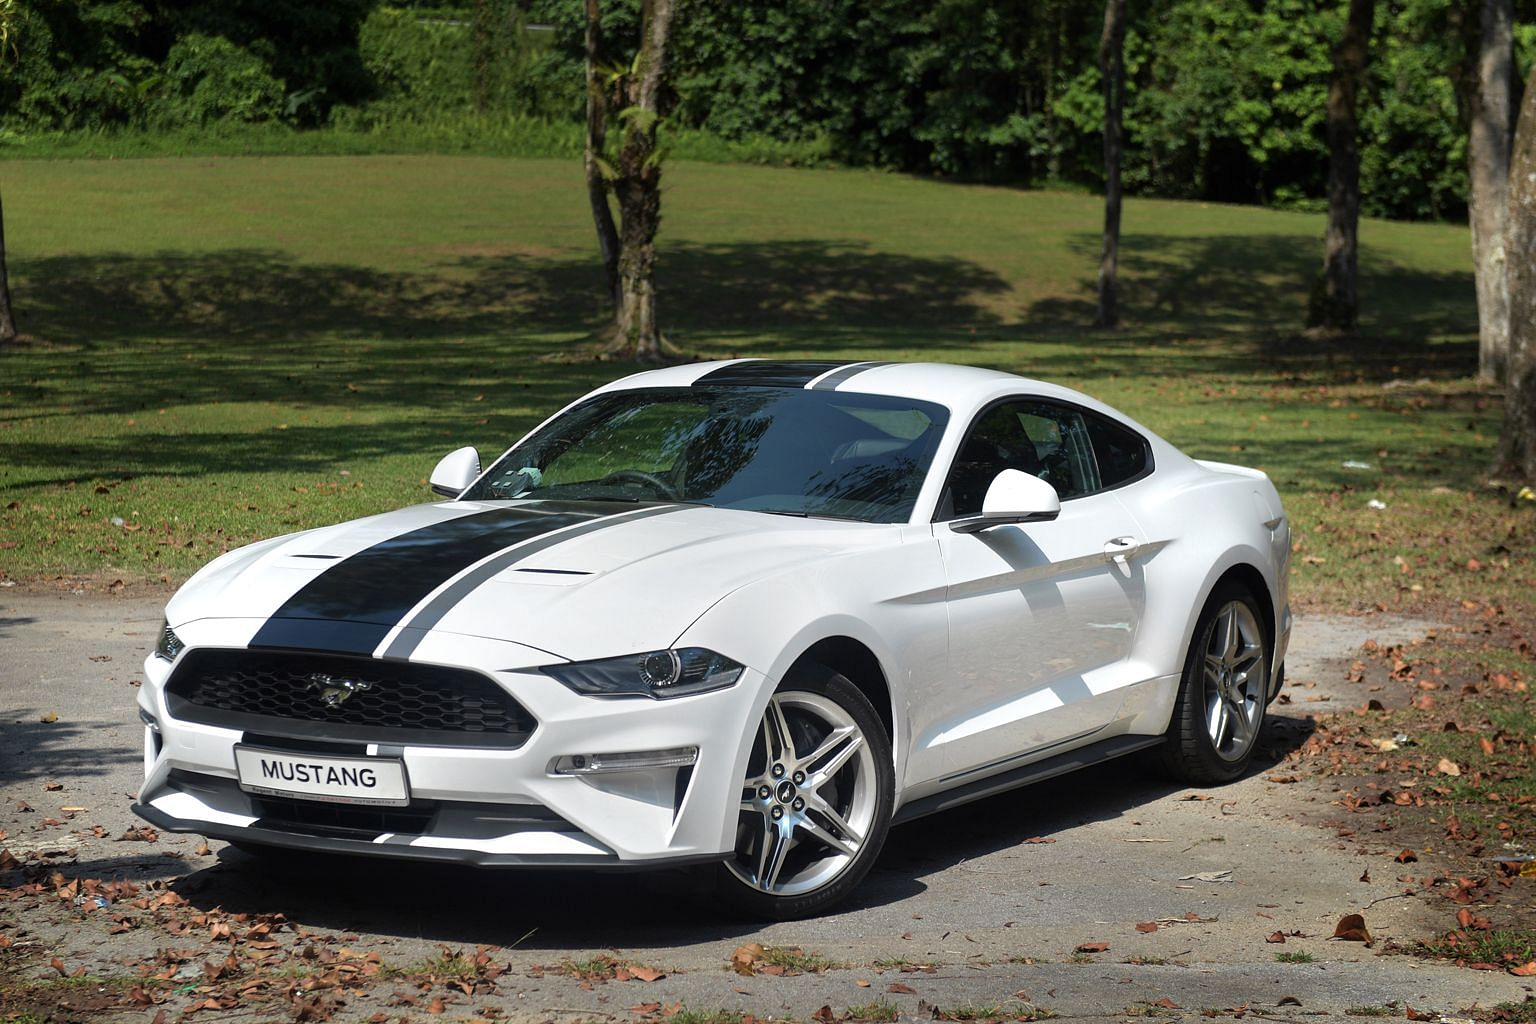 The Mustang is one of the only two models available at Ford agent Regent Motor's showroom in Alexandra Road.